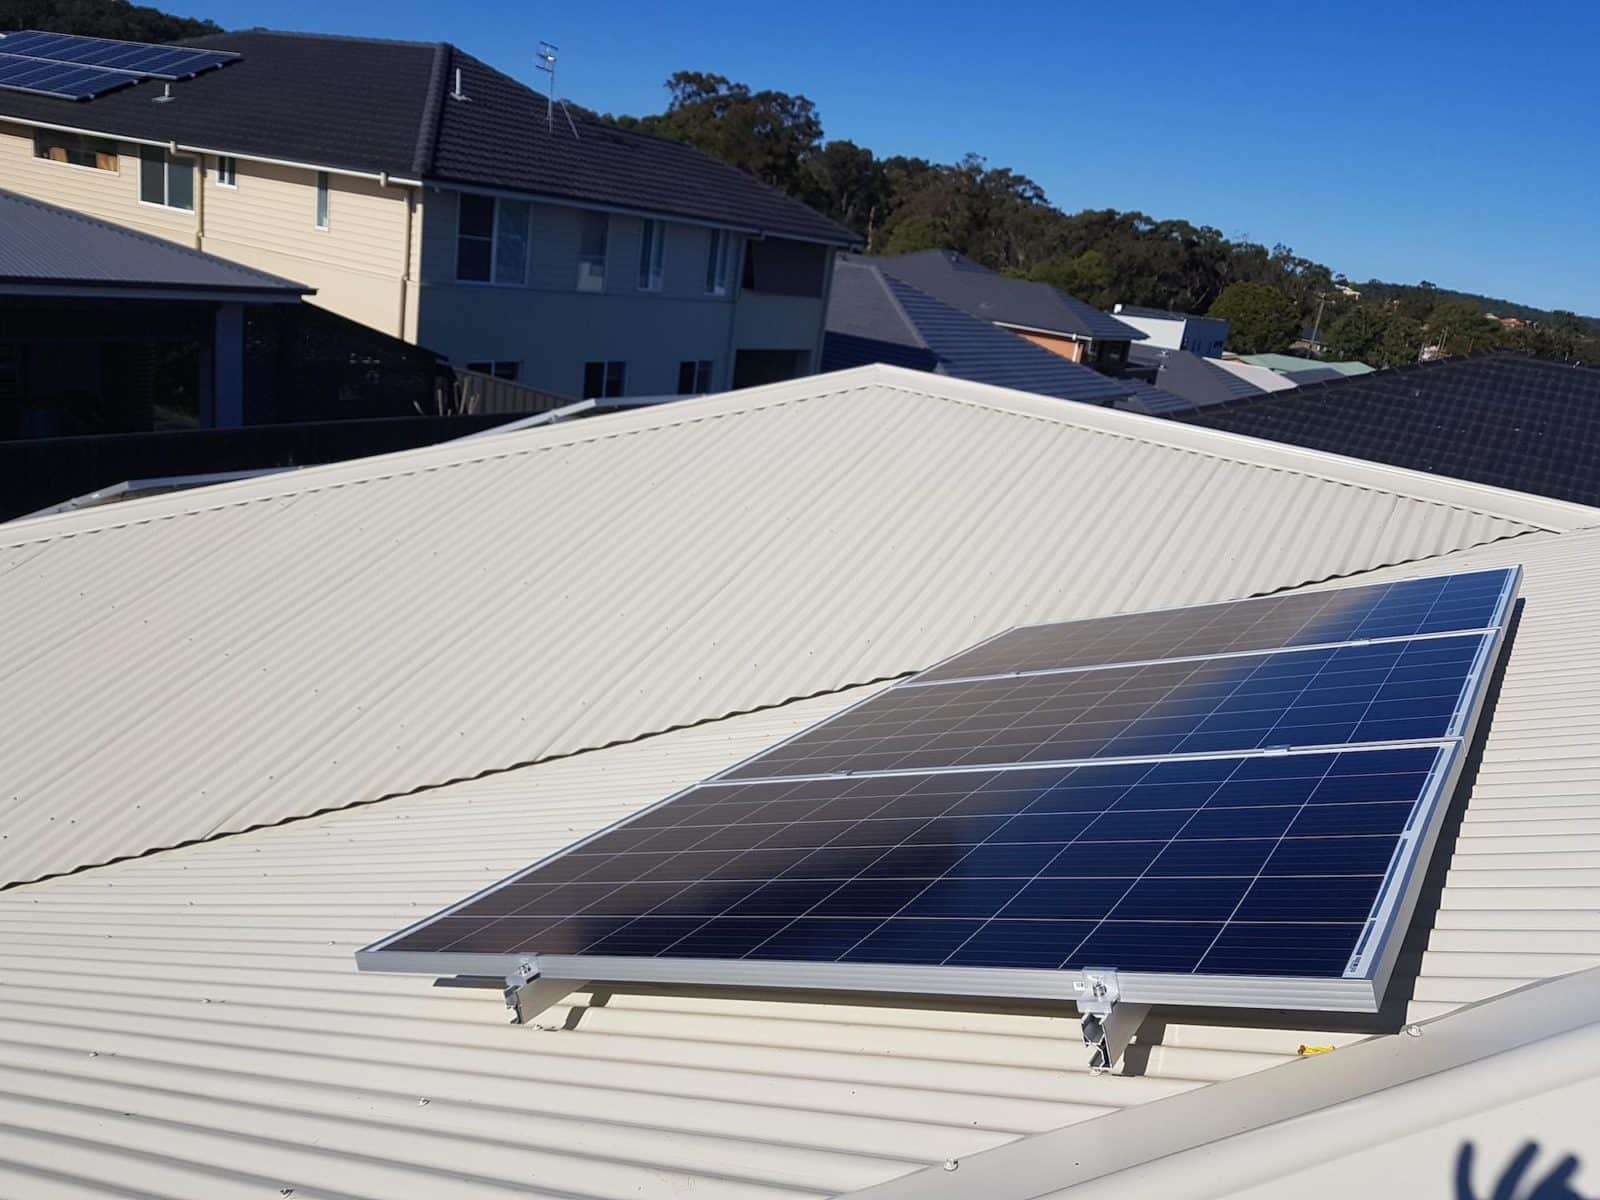 How to Install Solar Panels at Home